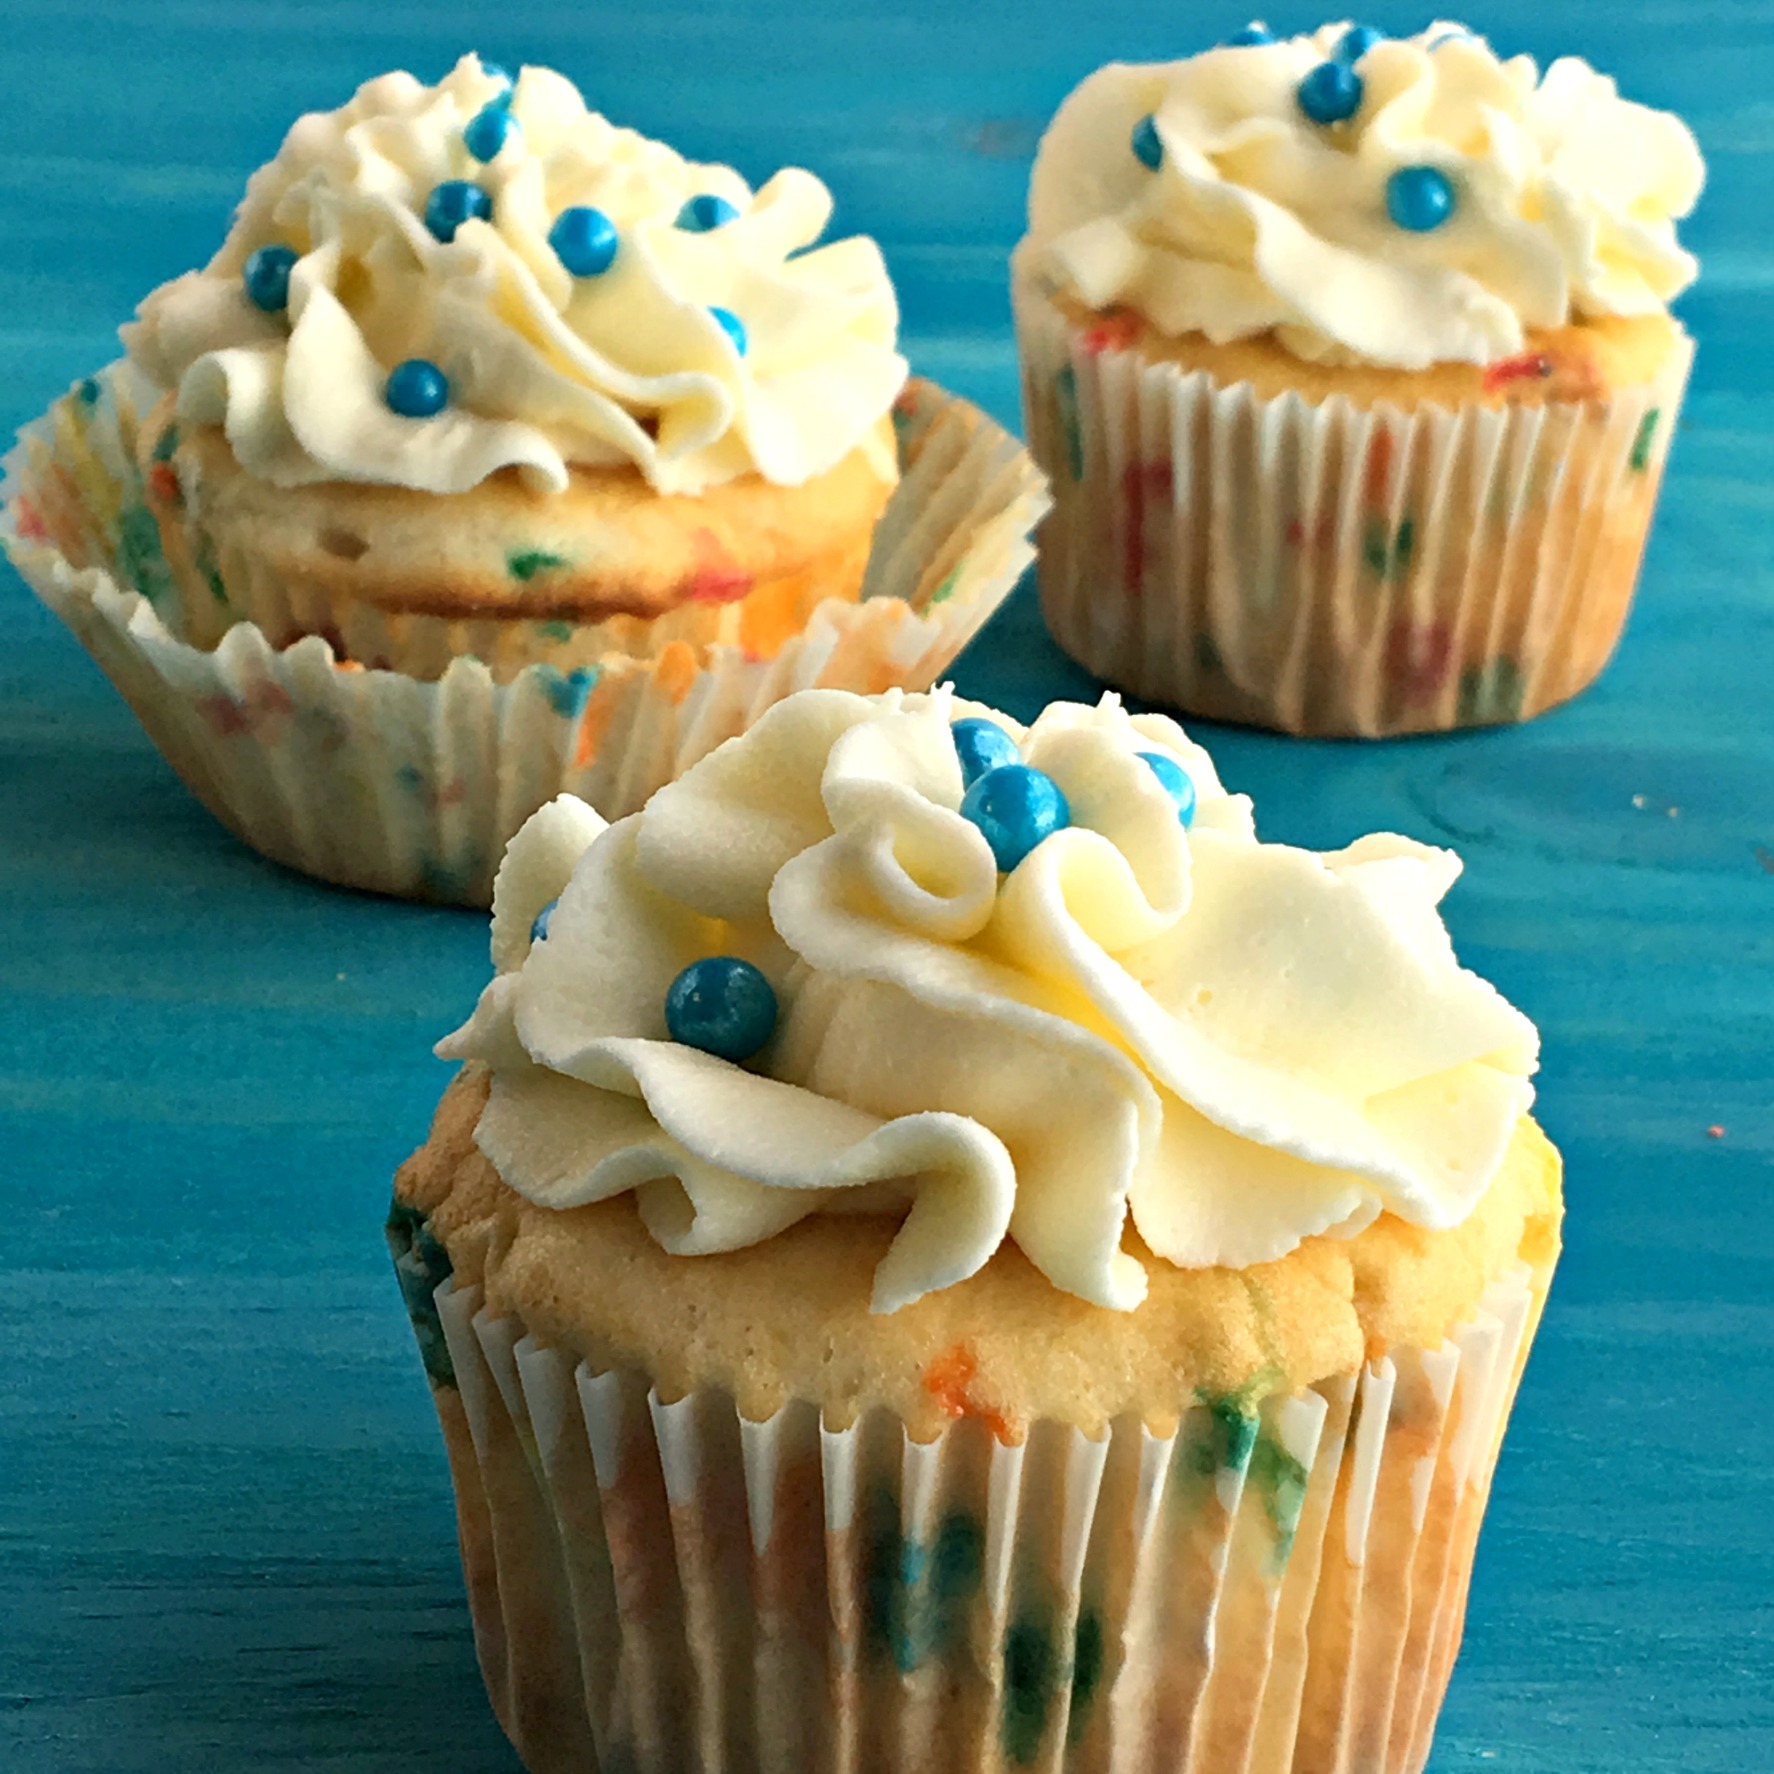 Classic Buttercream Frosting, Buttercream, Frosting, Cupcakes